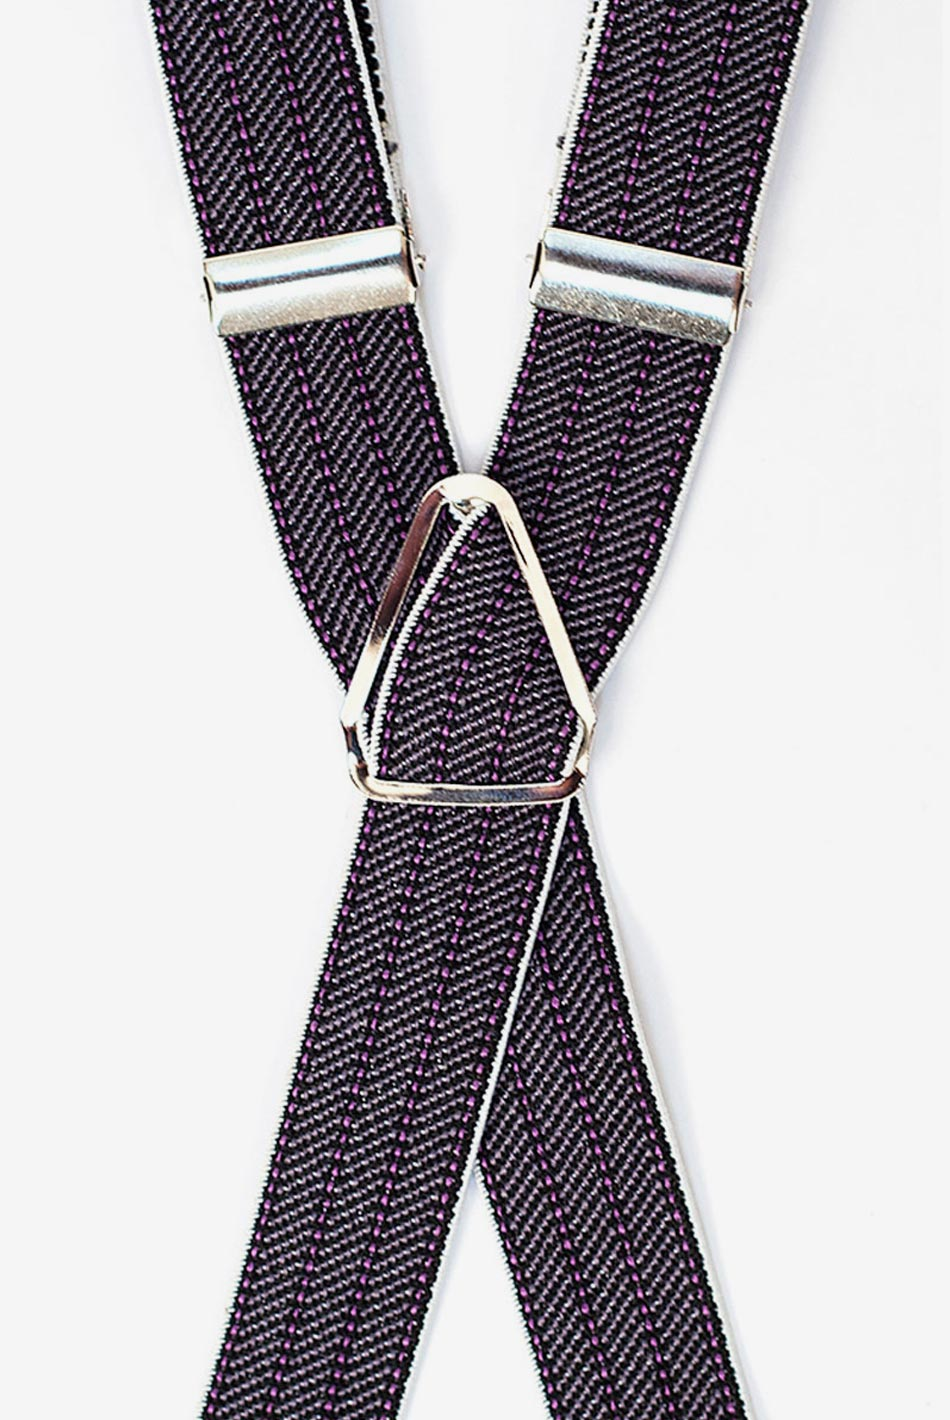 Eleventh Doctor's Purple Suspenders